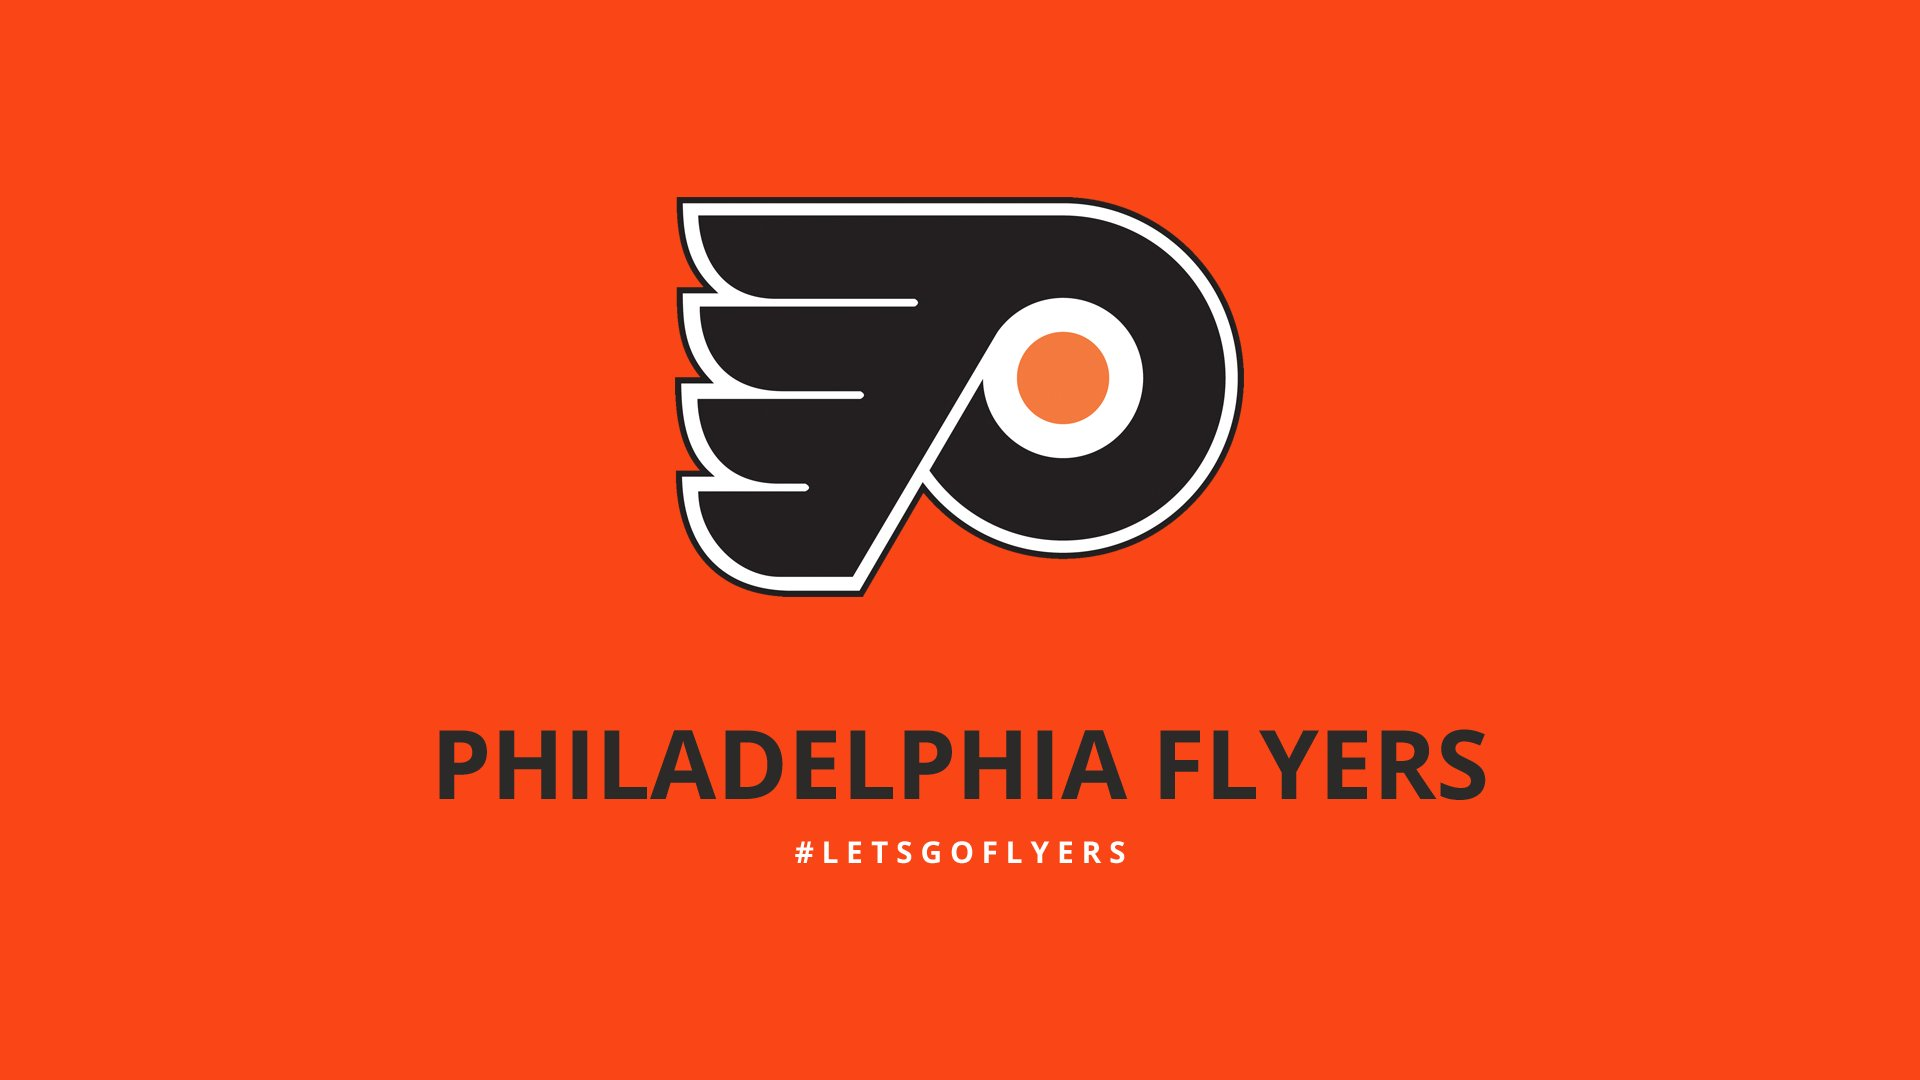 PHILADELPHIA FLYERS nhl hockey 1 wallpaper 1920x1080 1920x1080